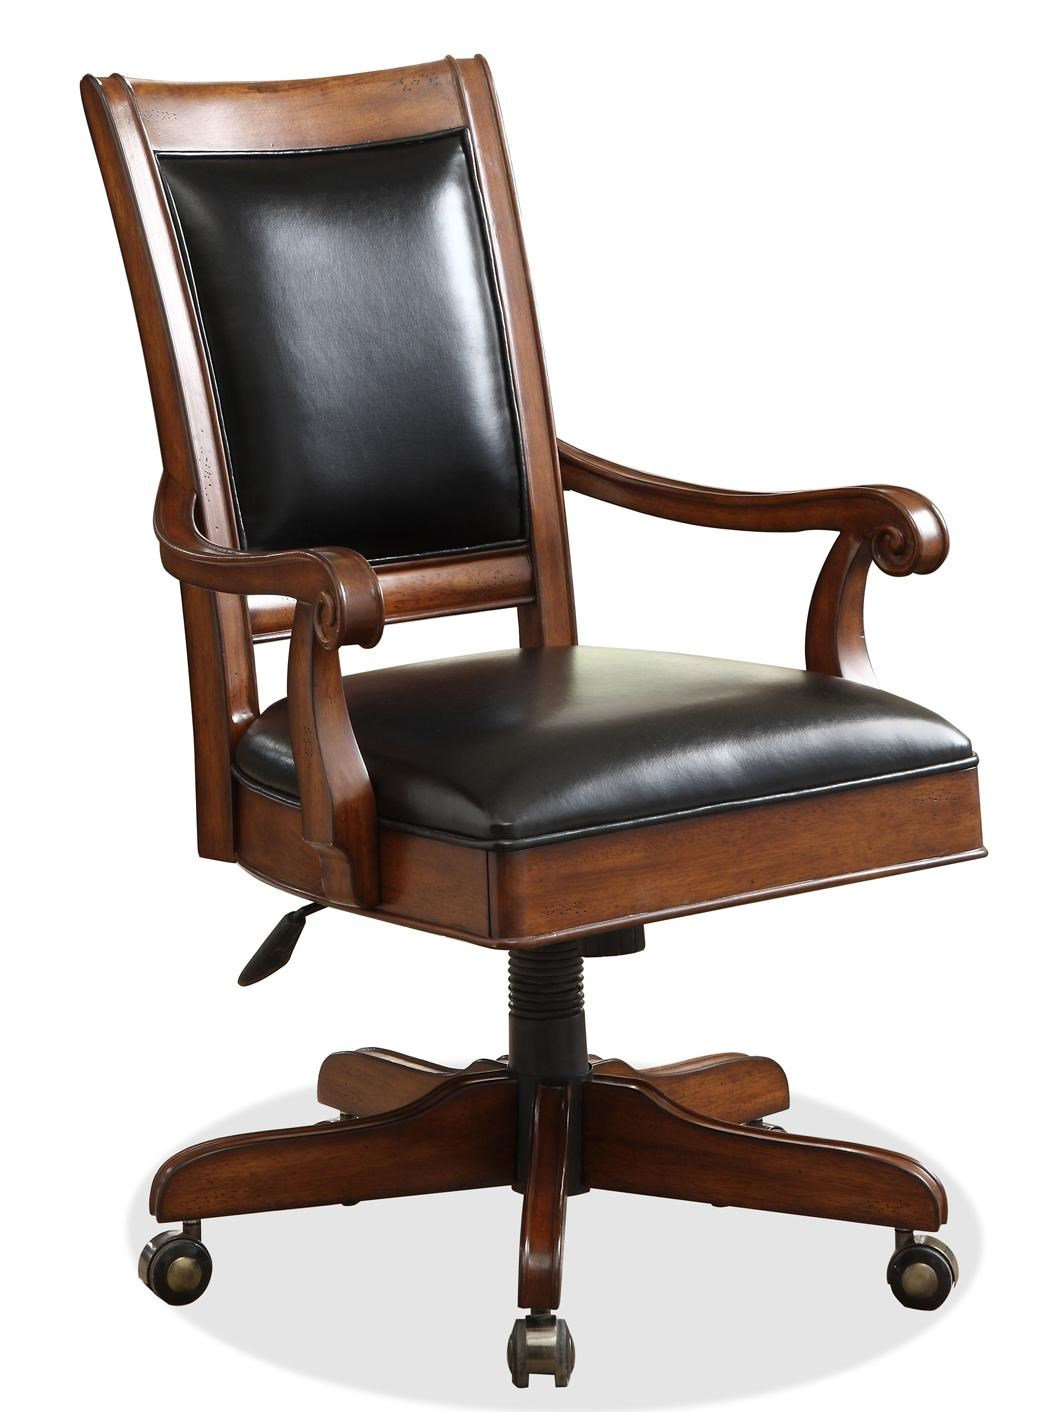 Desk Seat Bristol Court Caster Equipped Wooden Desk Chair With Leather Covered Seat By Riverside Furniture At Dunk Bright Furniture